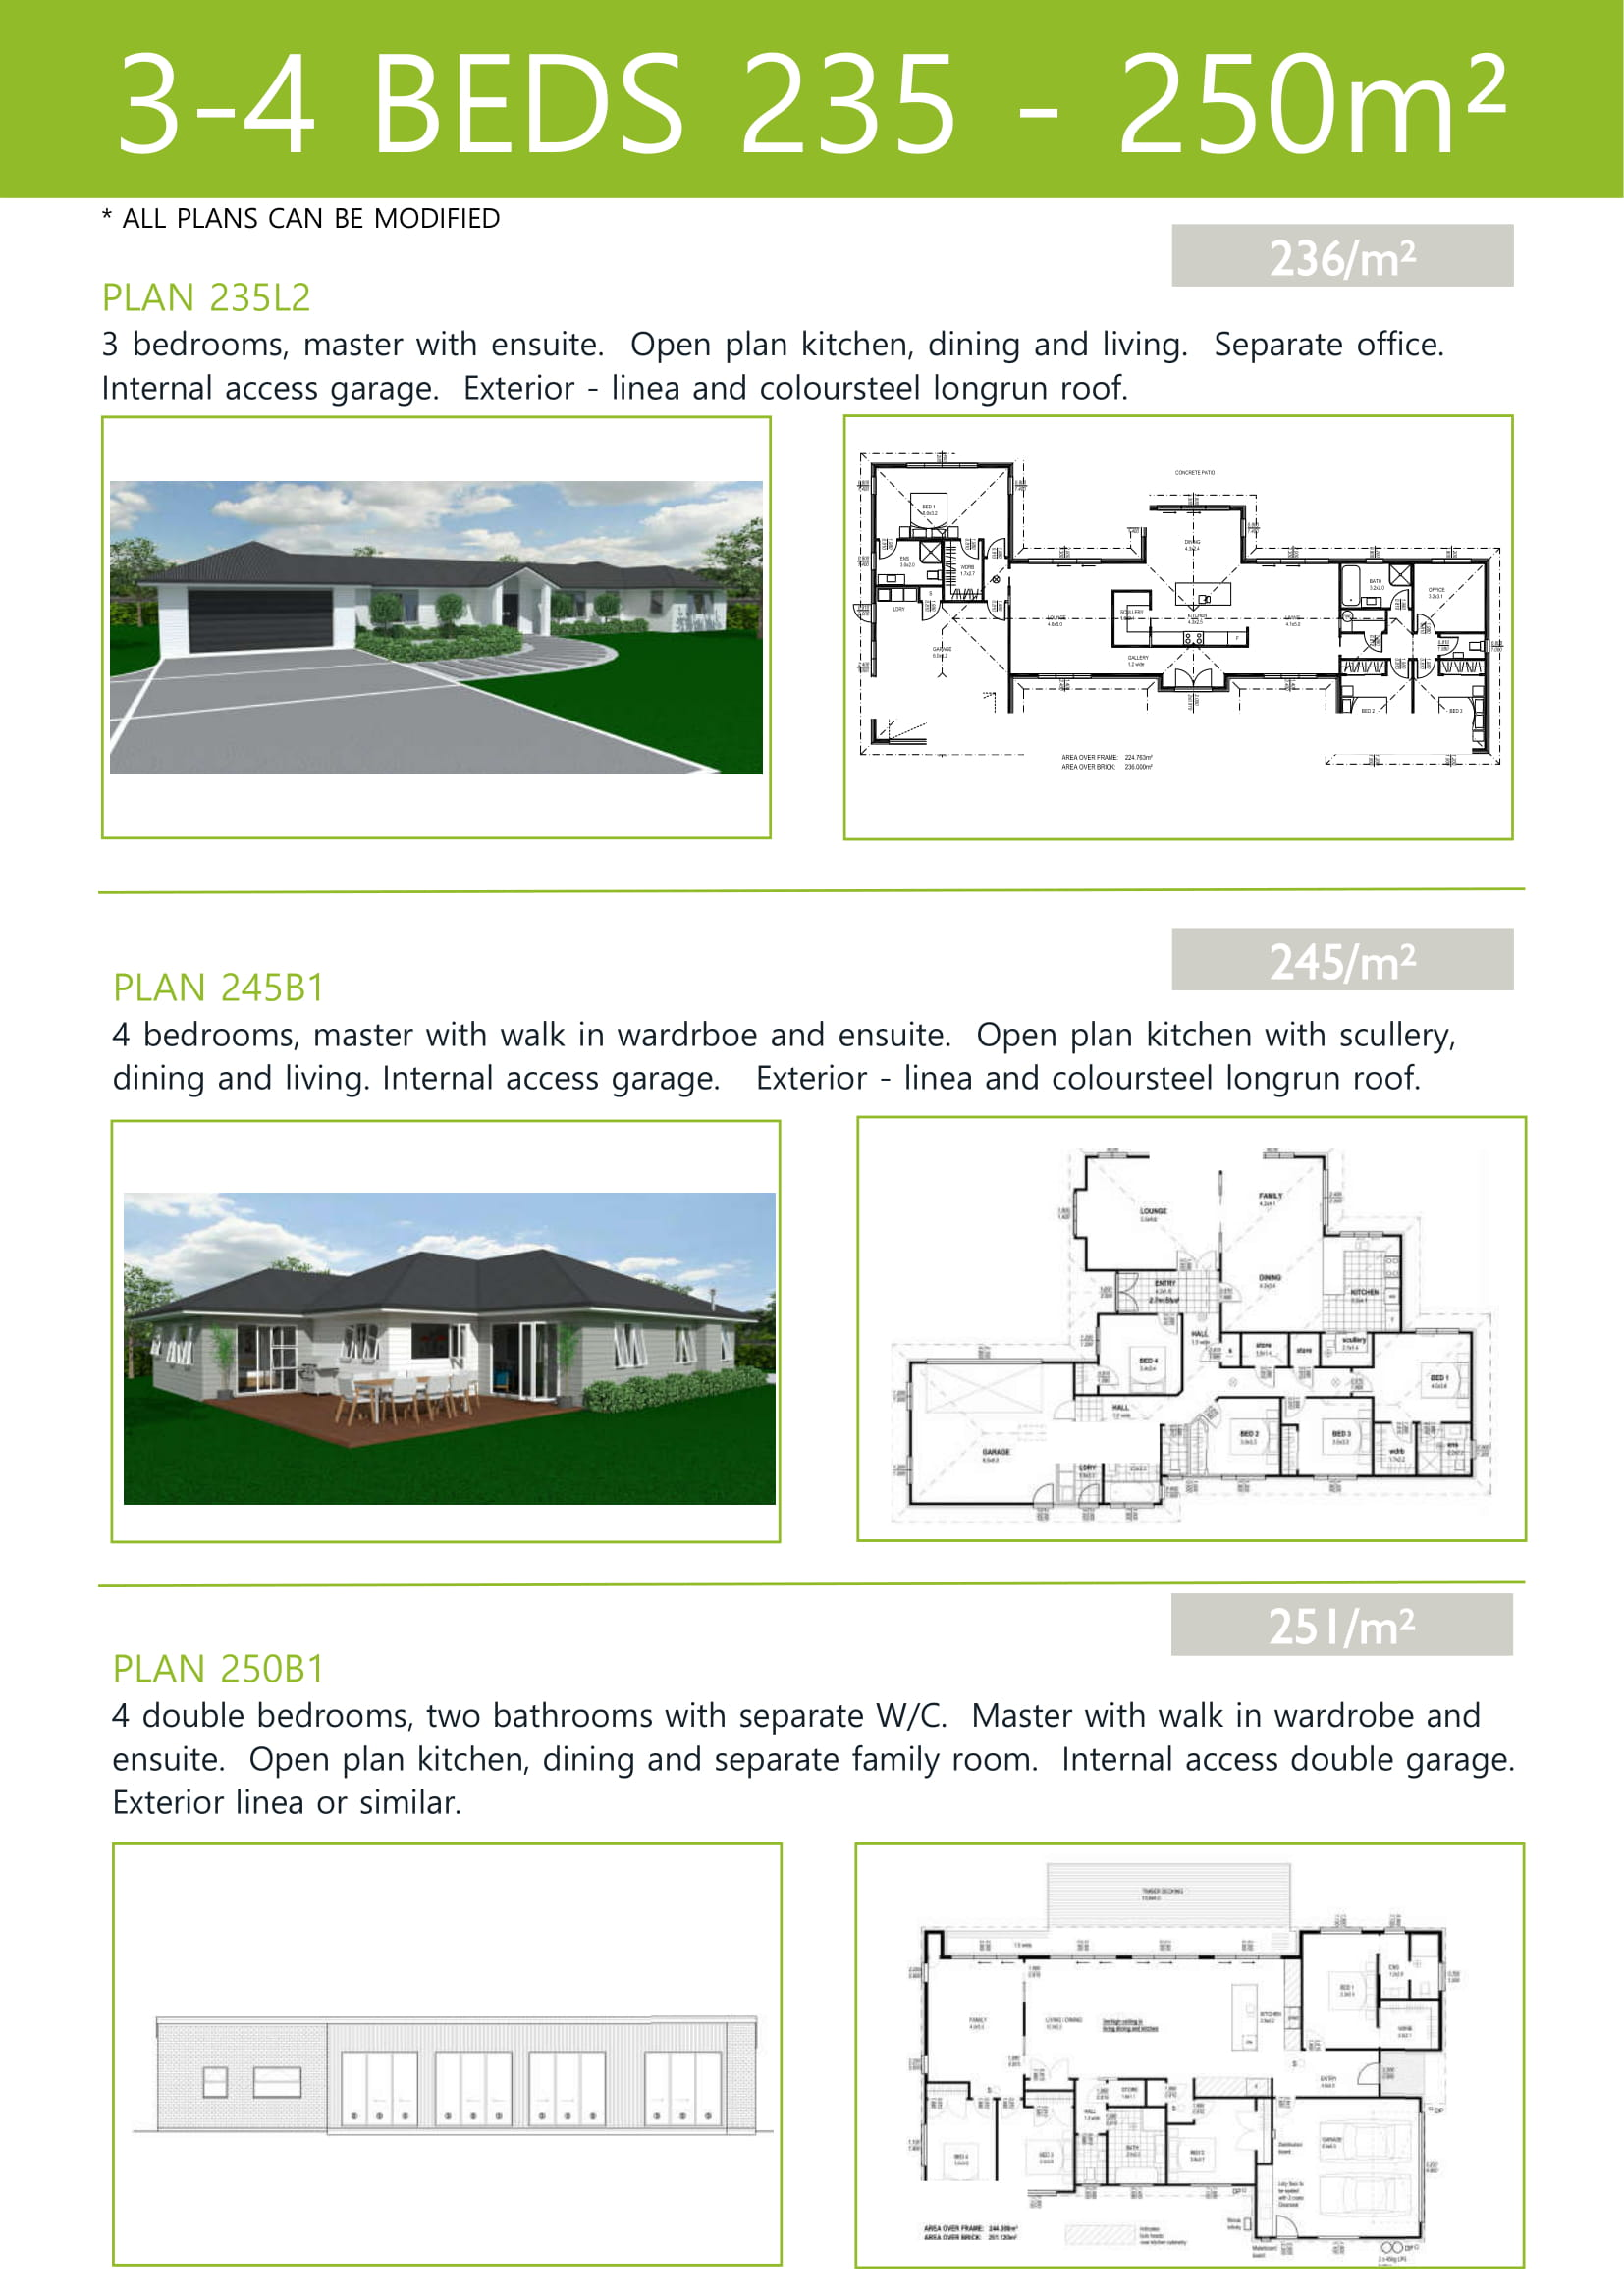 Plans up to 250M2